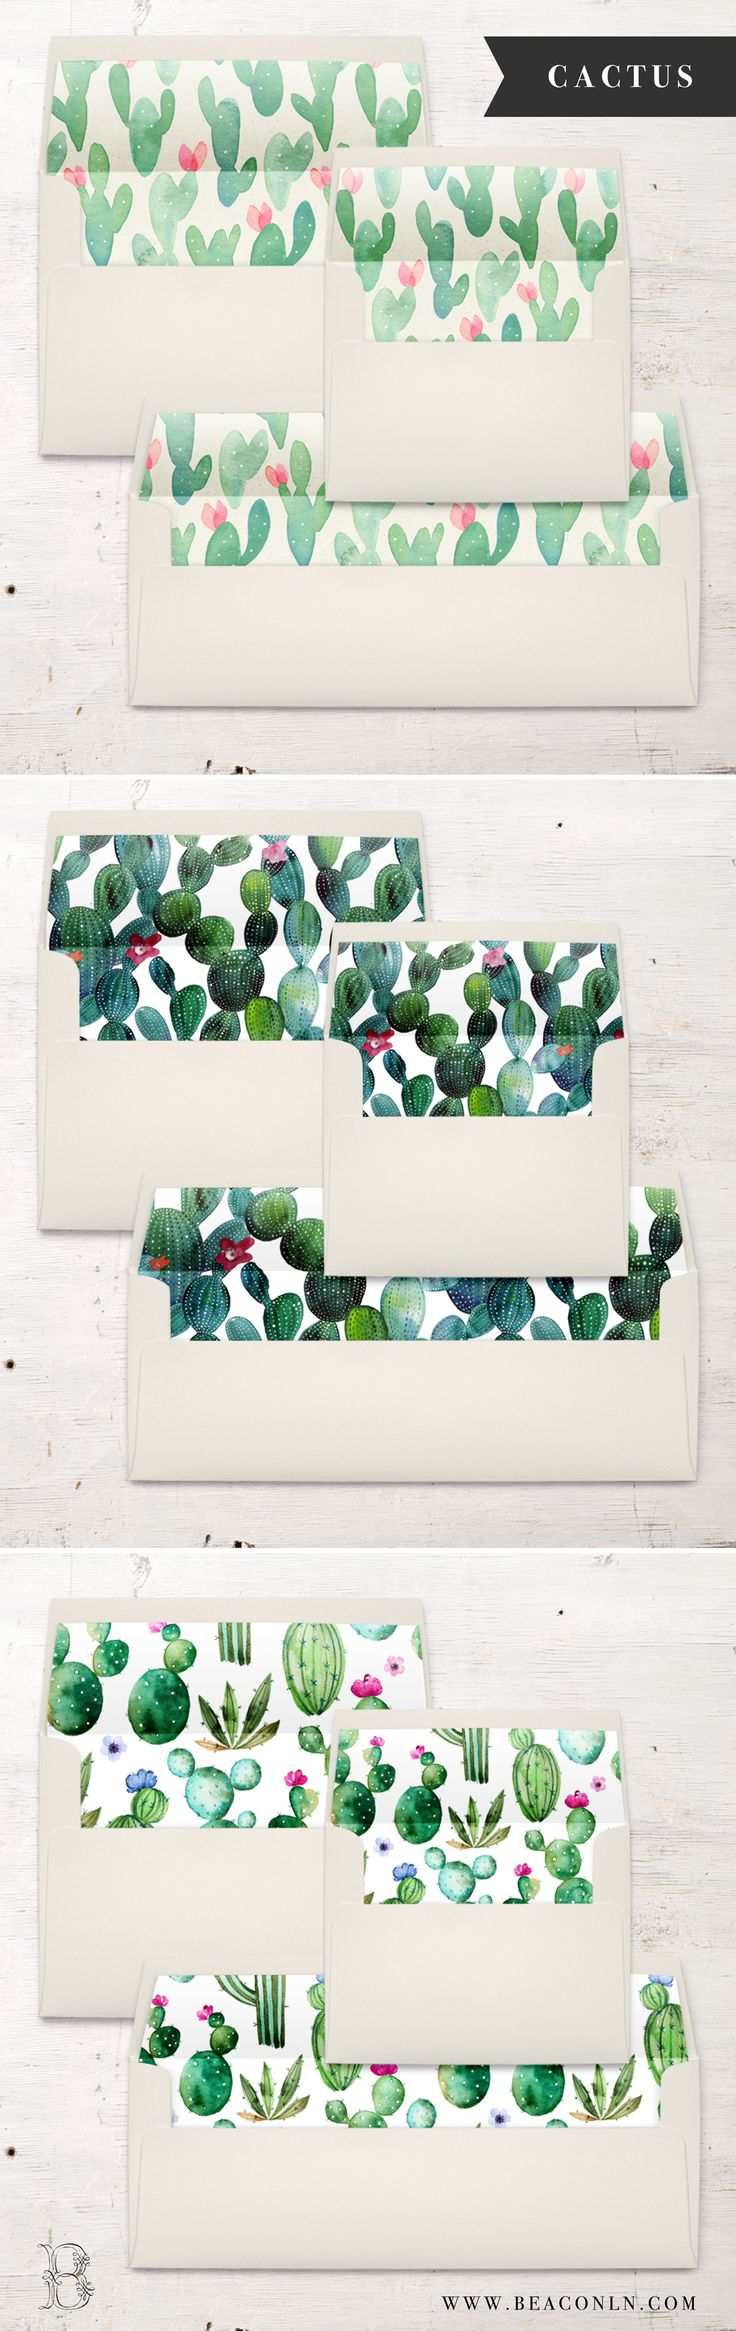 Get ready for some envelope liner pretty! Floral, tropical, cactus, geometric and more. Each A7, A2 or #10 envelope liner is digitally printed on the paper of your choice and then hand cut and assembled inside each envelope. No messy glue strips or at home assembly needed – all the work will be done for you!